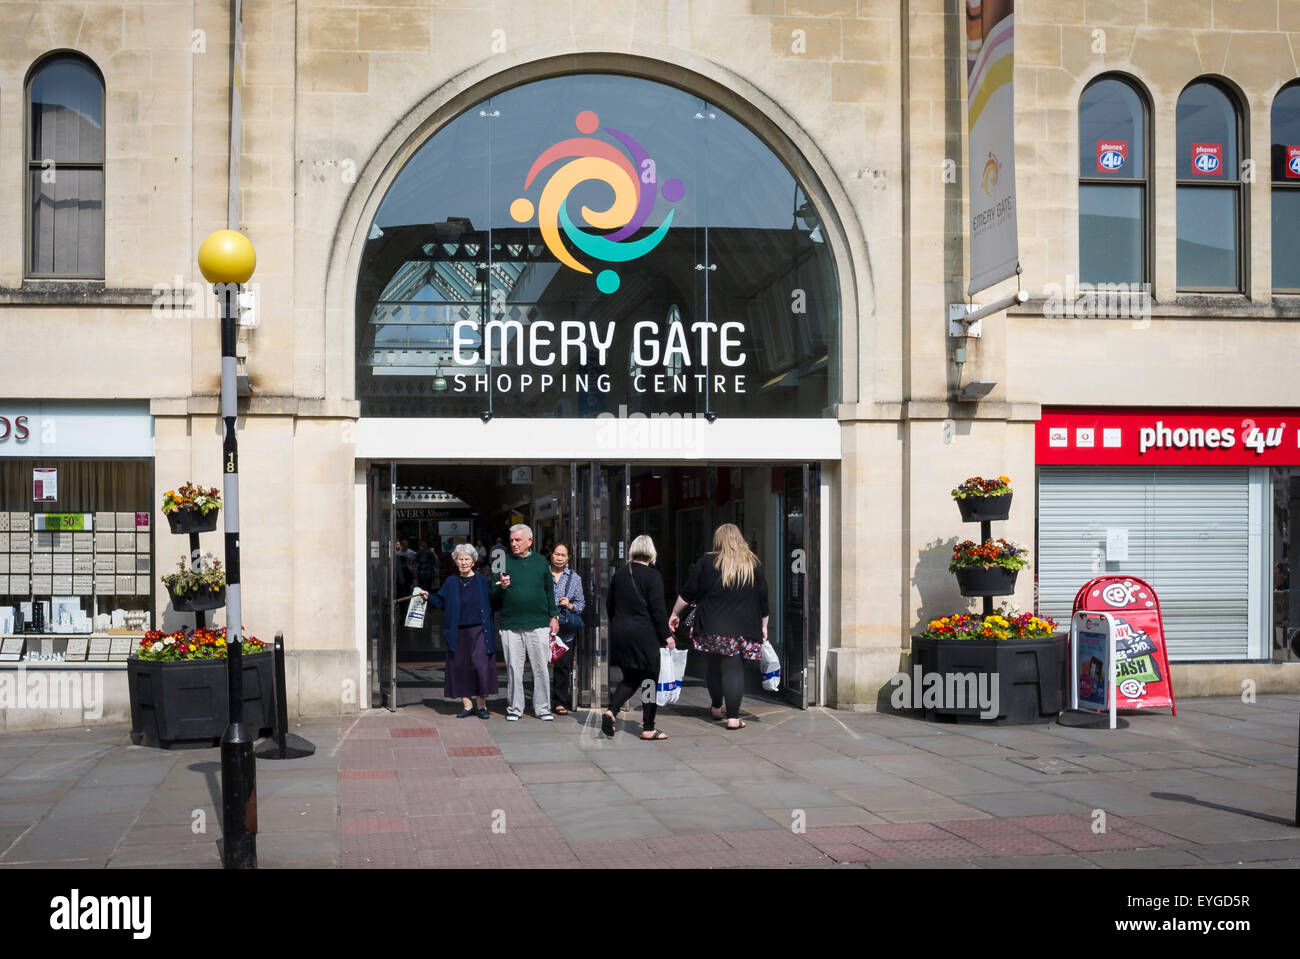 Emery Gate shopping centre entrance in Chippenham Wiltshire UK - Stock Image